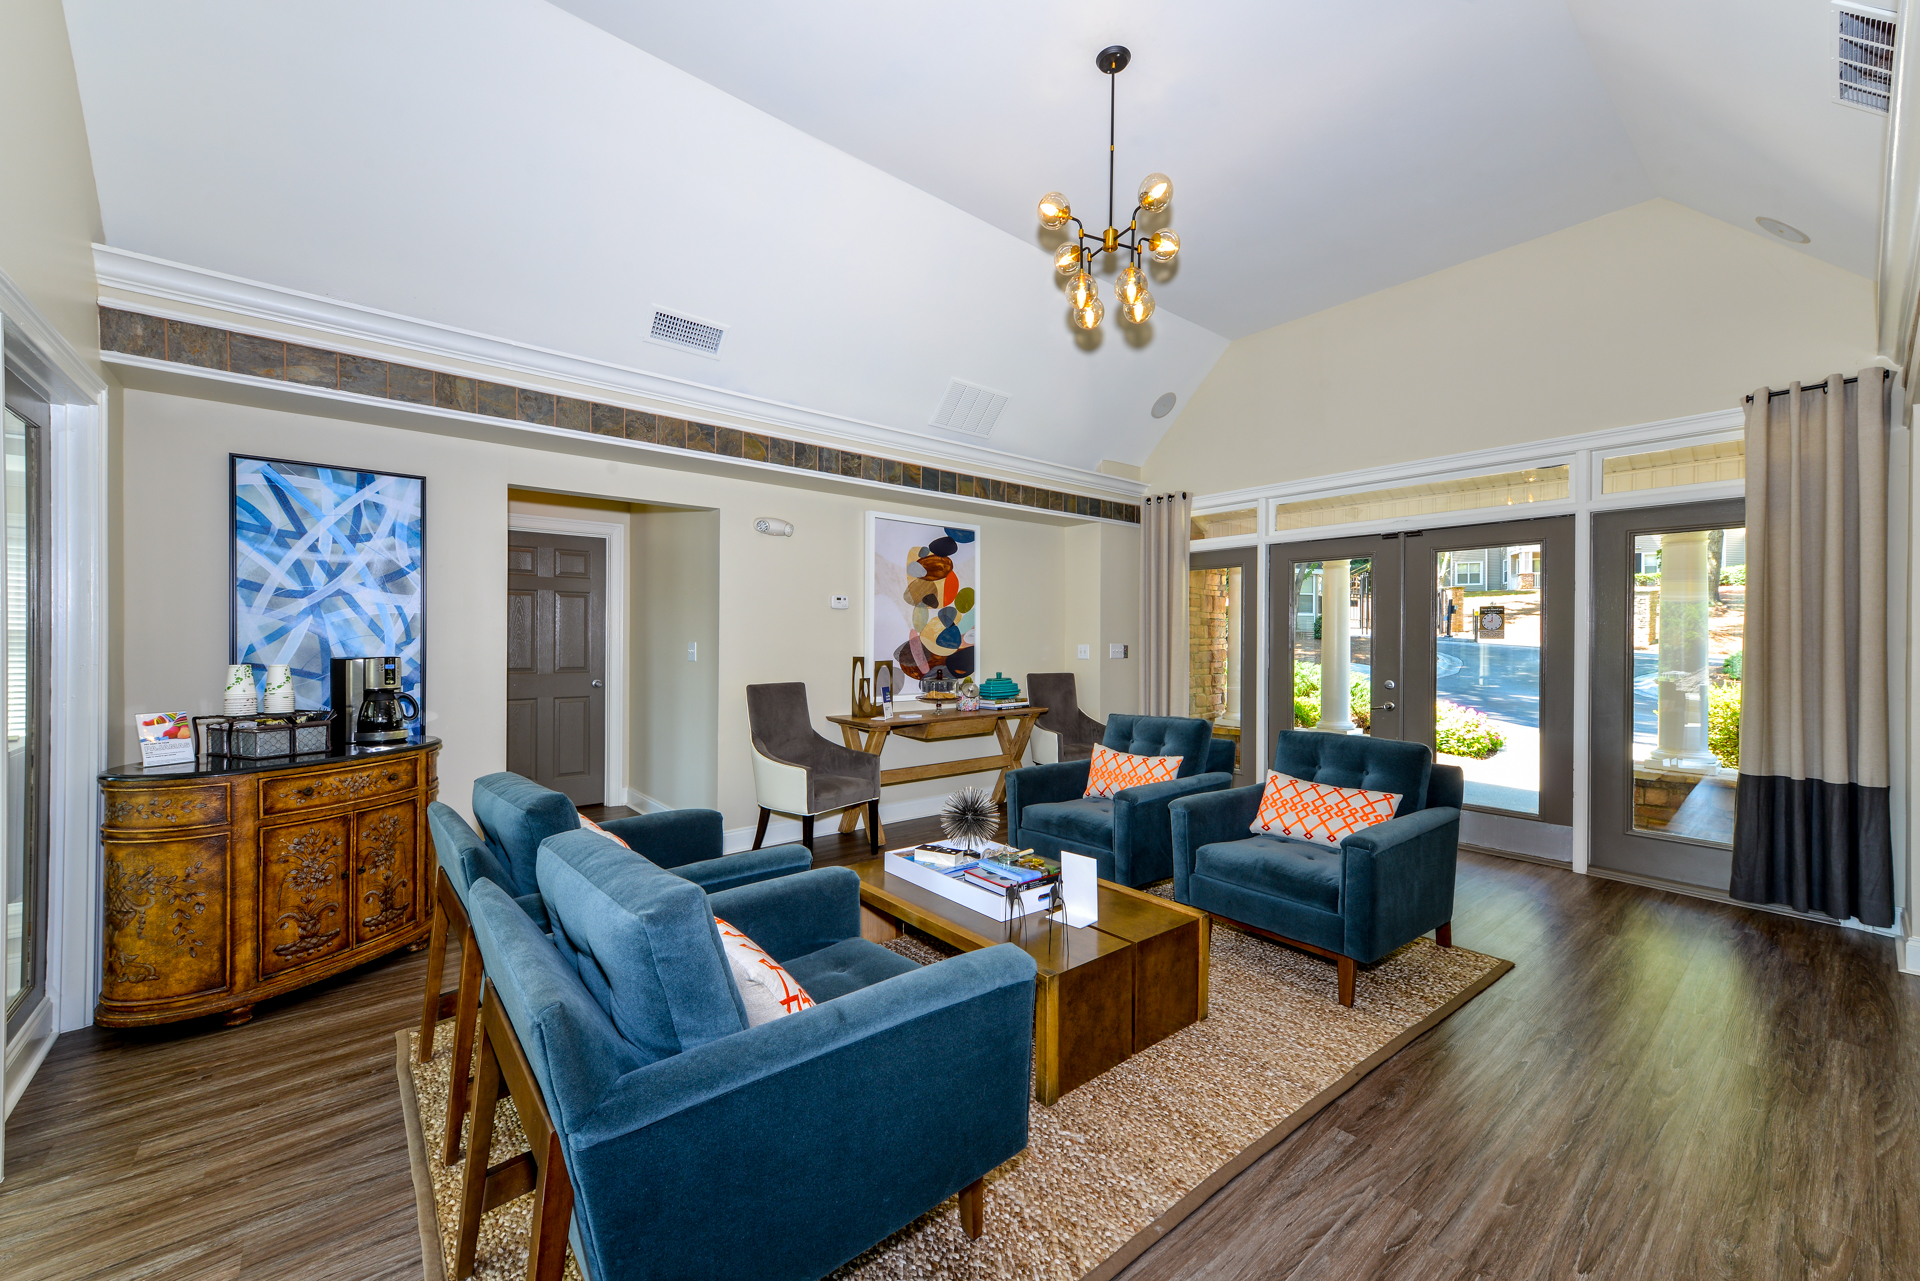 Luxurious Lobby Area With Community Seating And Coffee At Lakeside At Arbor  Place Apartments In Douglasville